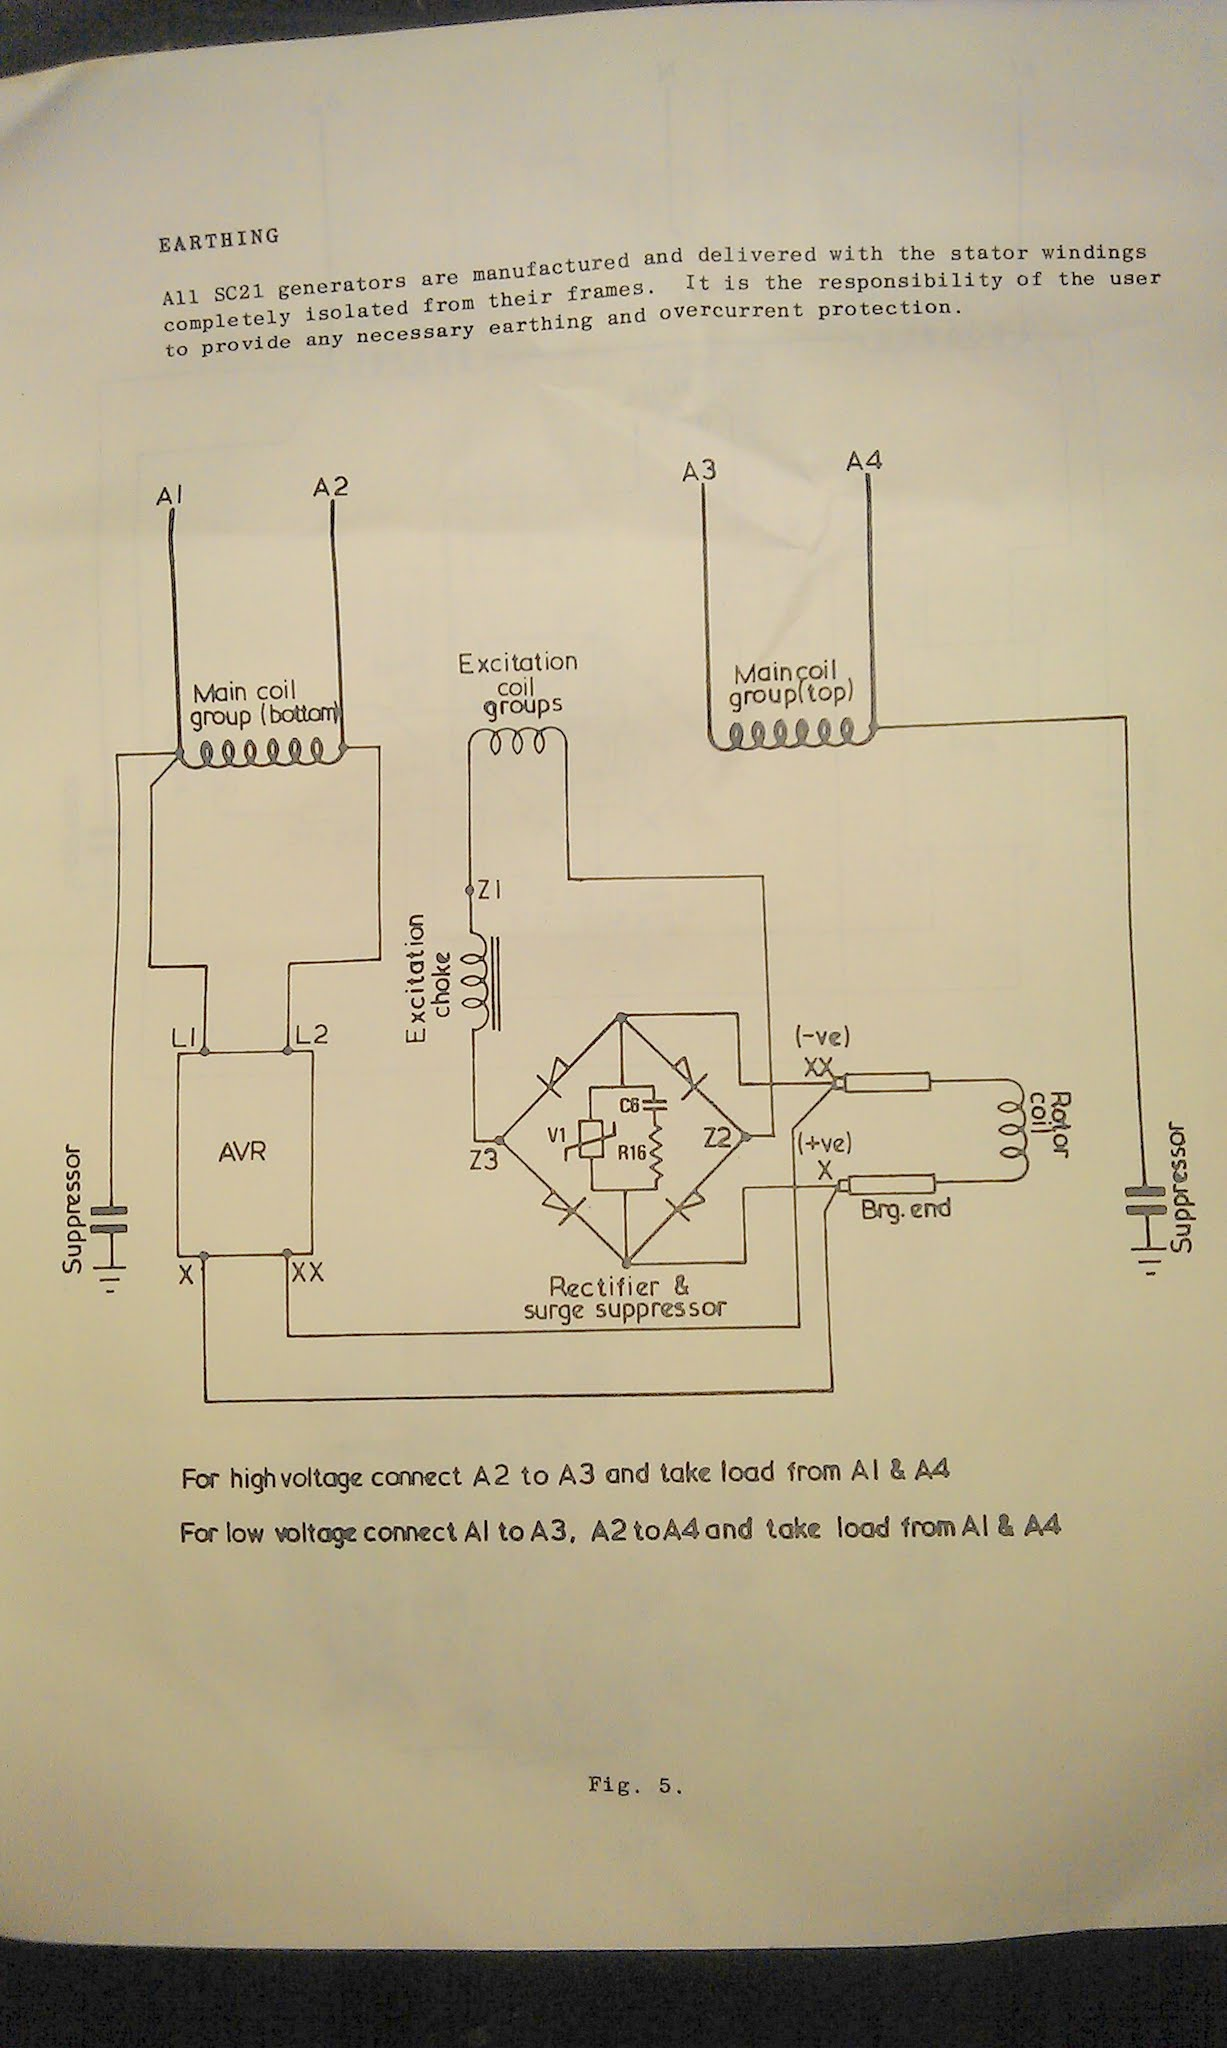 IMAG0443 markon sc21g field current control smokstak sx460 wiring diagram at webbmarketing.co